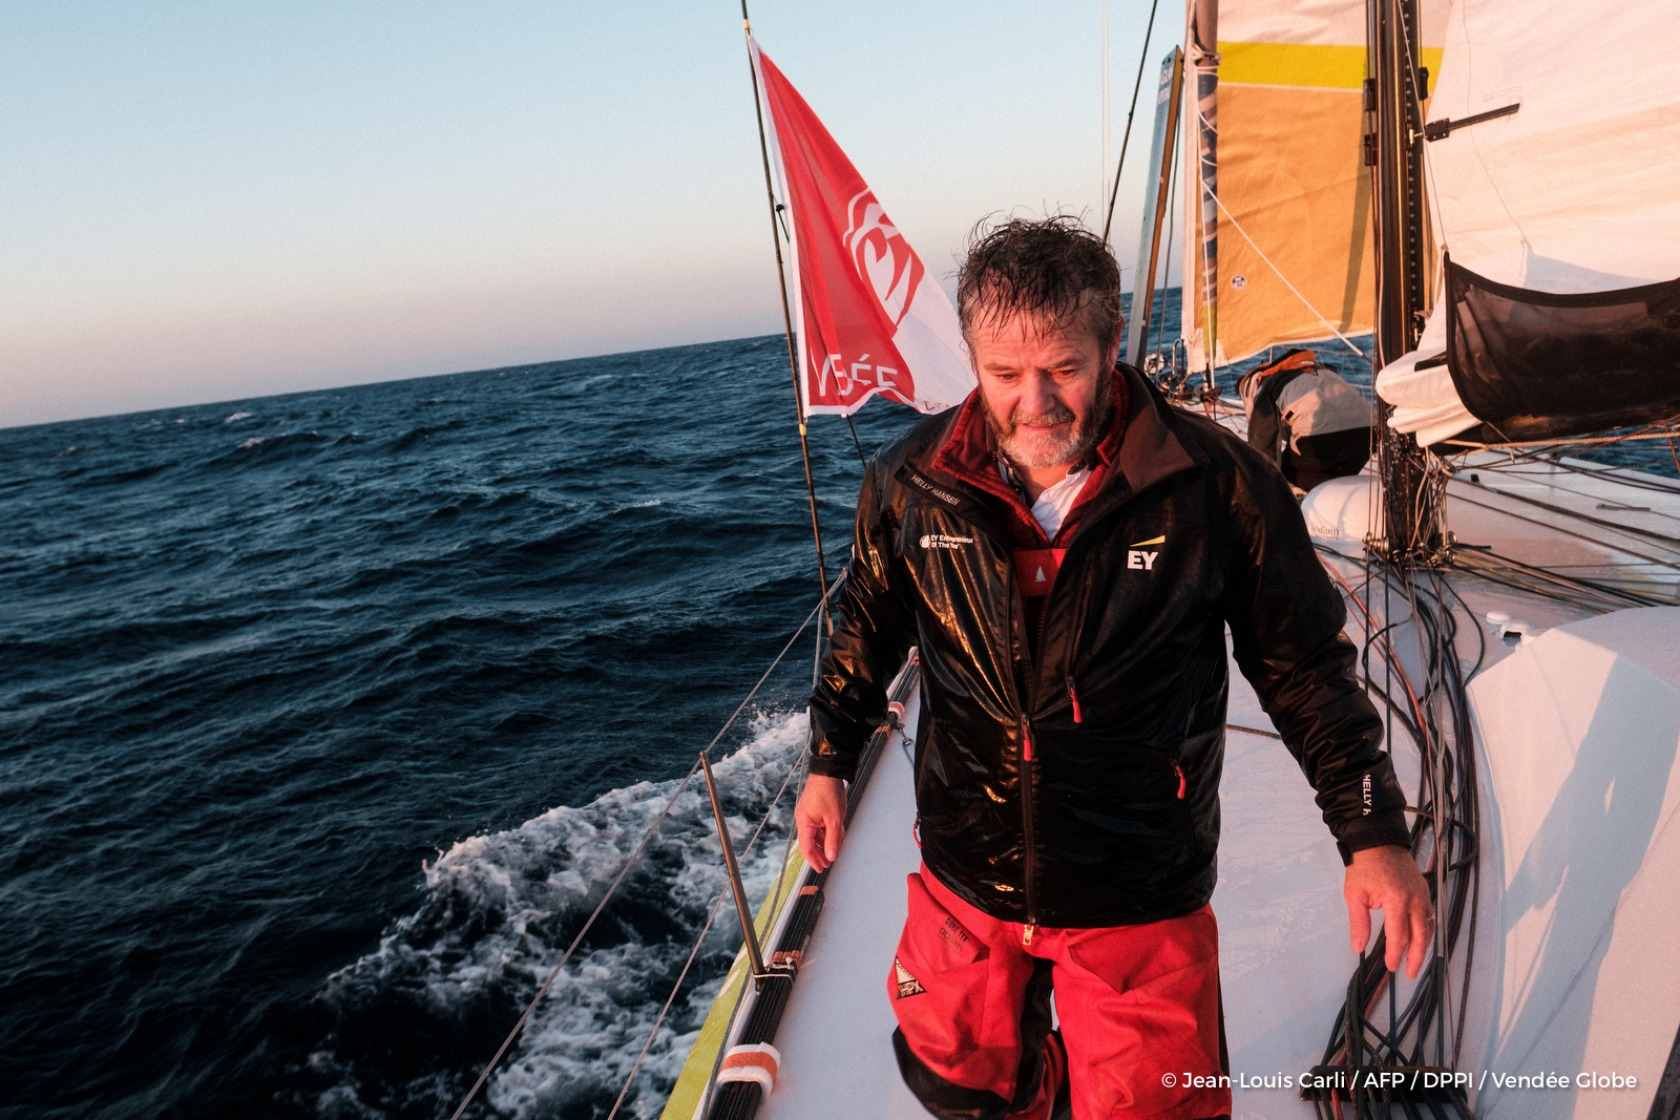 Enda O'Coineen (IRL), skipper Kilcullen Voyager - Team Ireland, training solo for the Vendee Globe, off Belle-Ile on October  6, 2016 - Photo Jean-Louis Carli / AFP / DPPI / Vendee GlobeImages embarquées de Enda O'Coineen (IRL), skipper Kilcullen Voyage